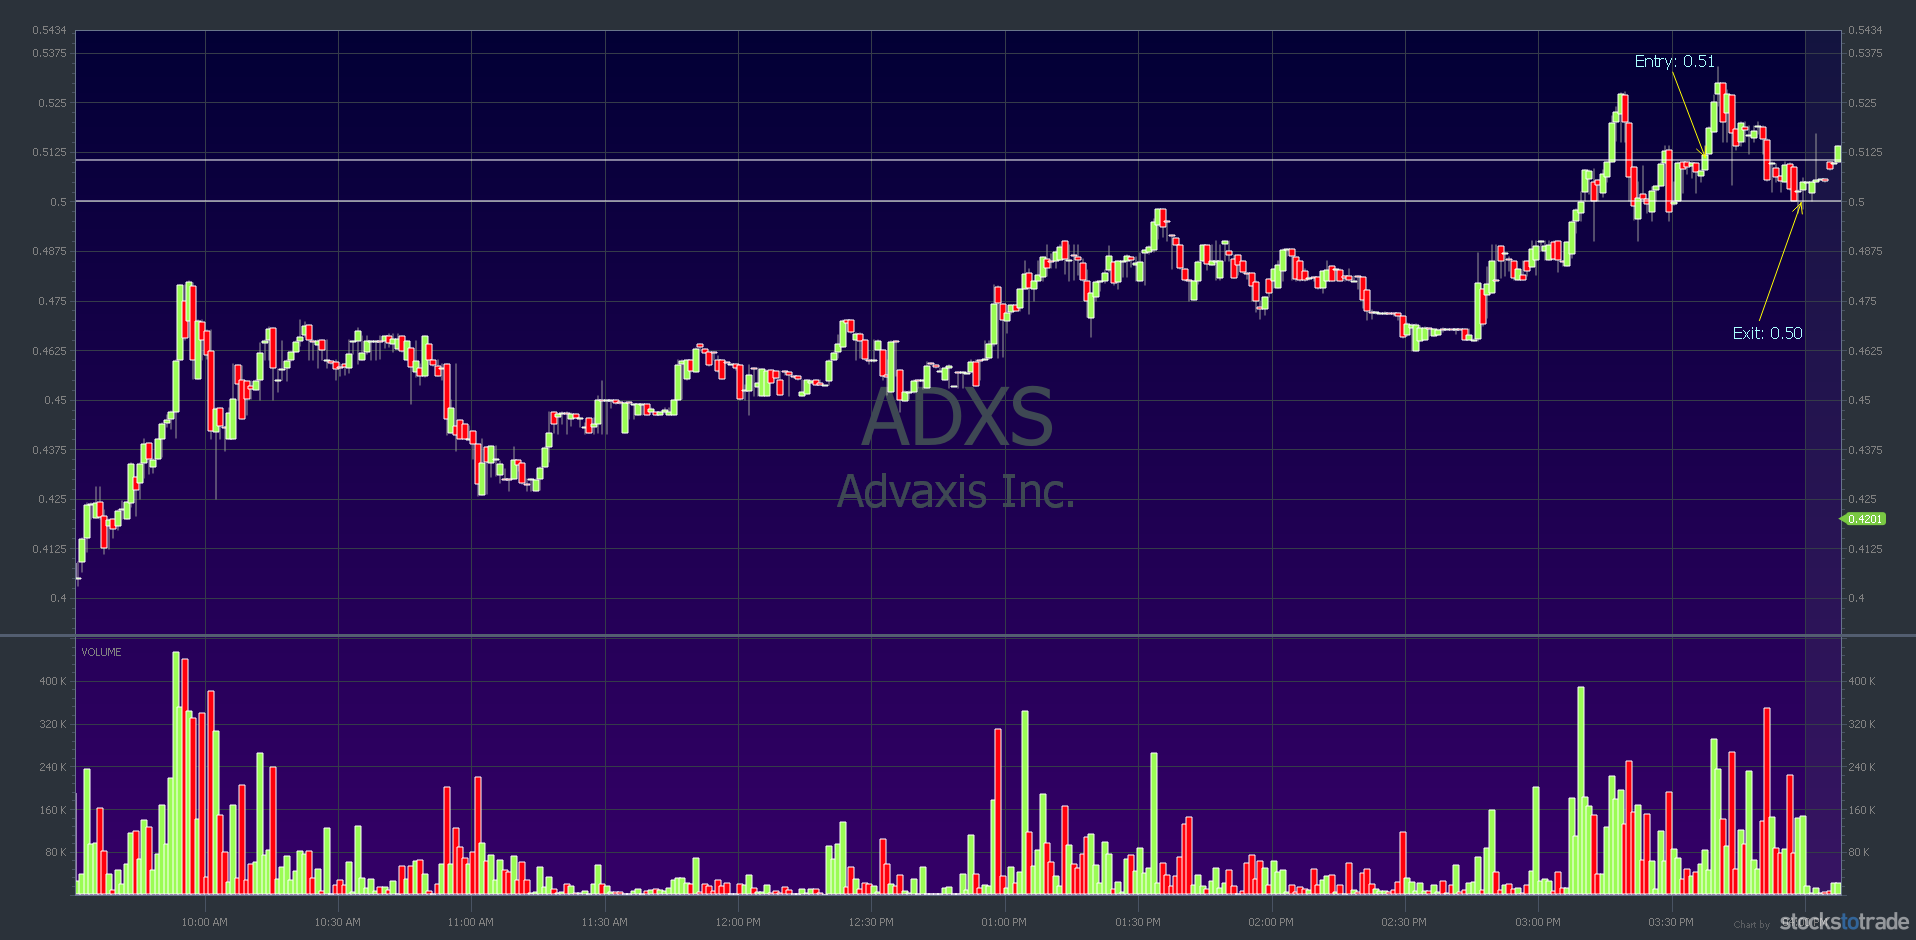 ADXS chart: November 18, speculative first green day runner trading losses example — courtesy of StocksToTrade.com